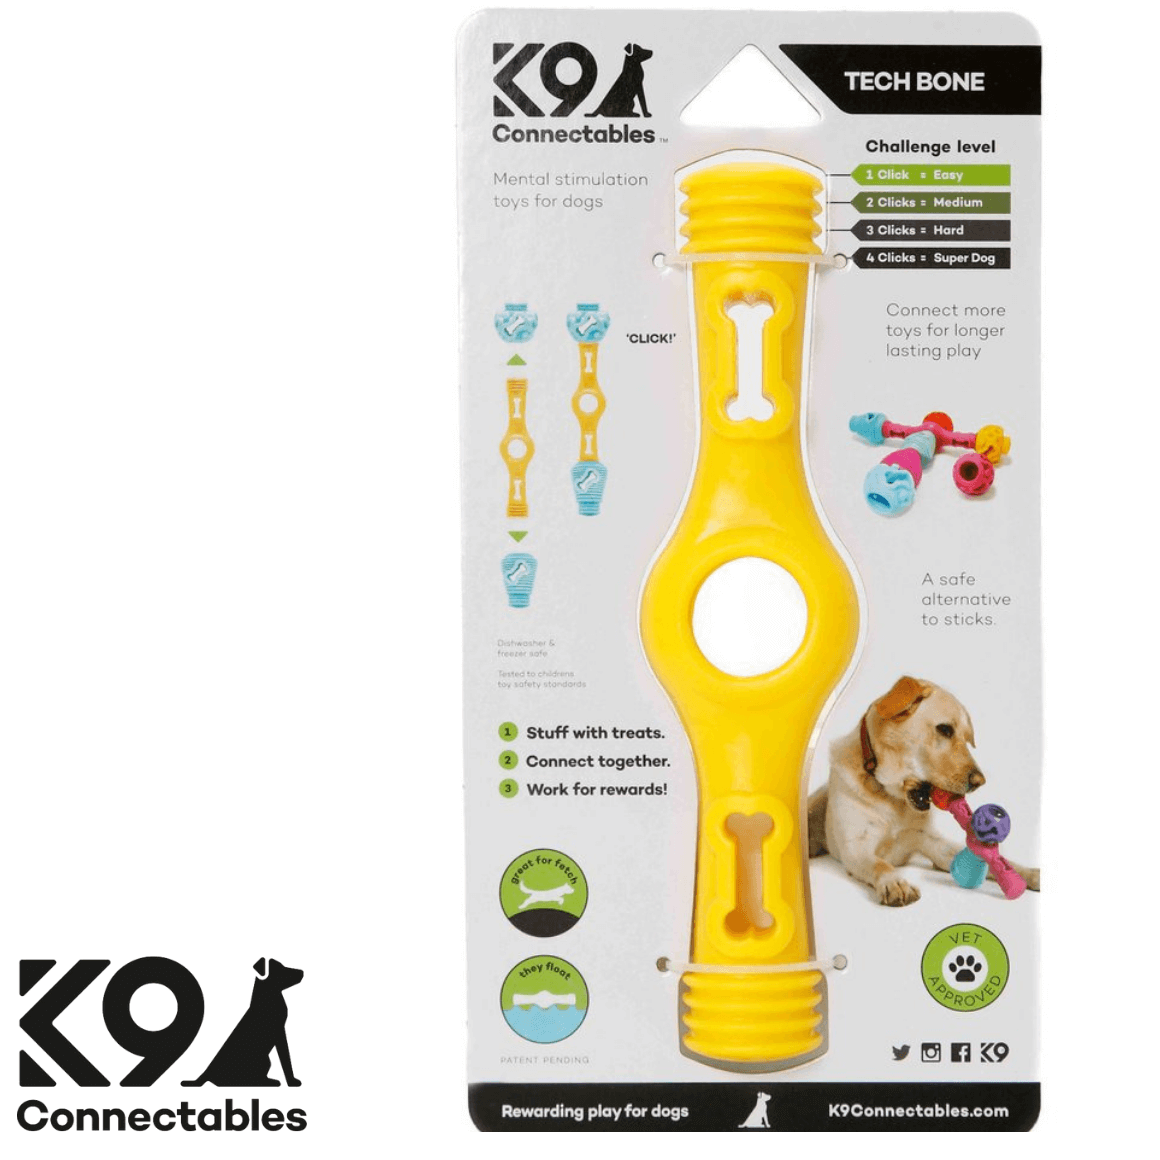 k9 Connectables Australia - The Tech Bone Yellow